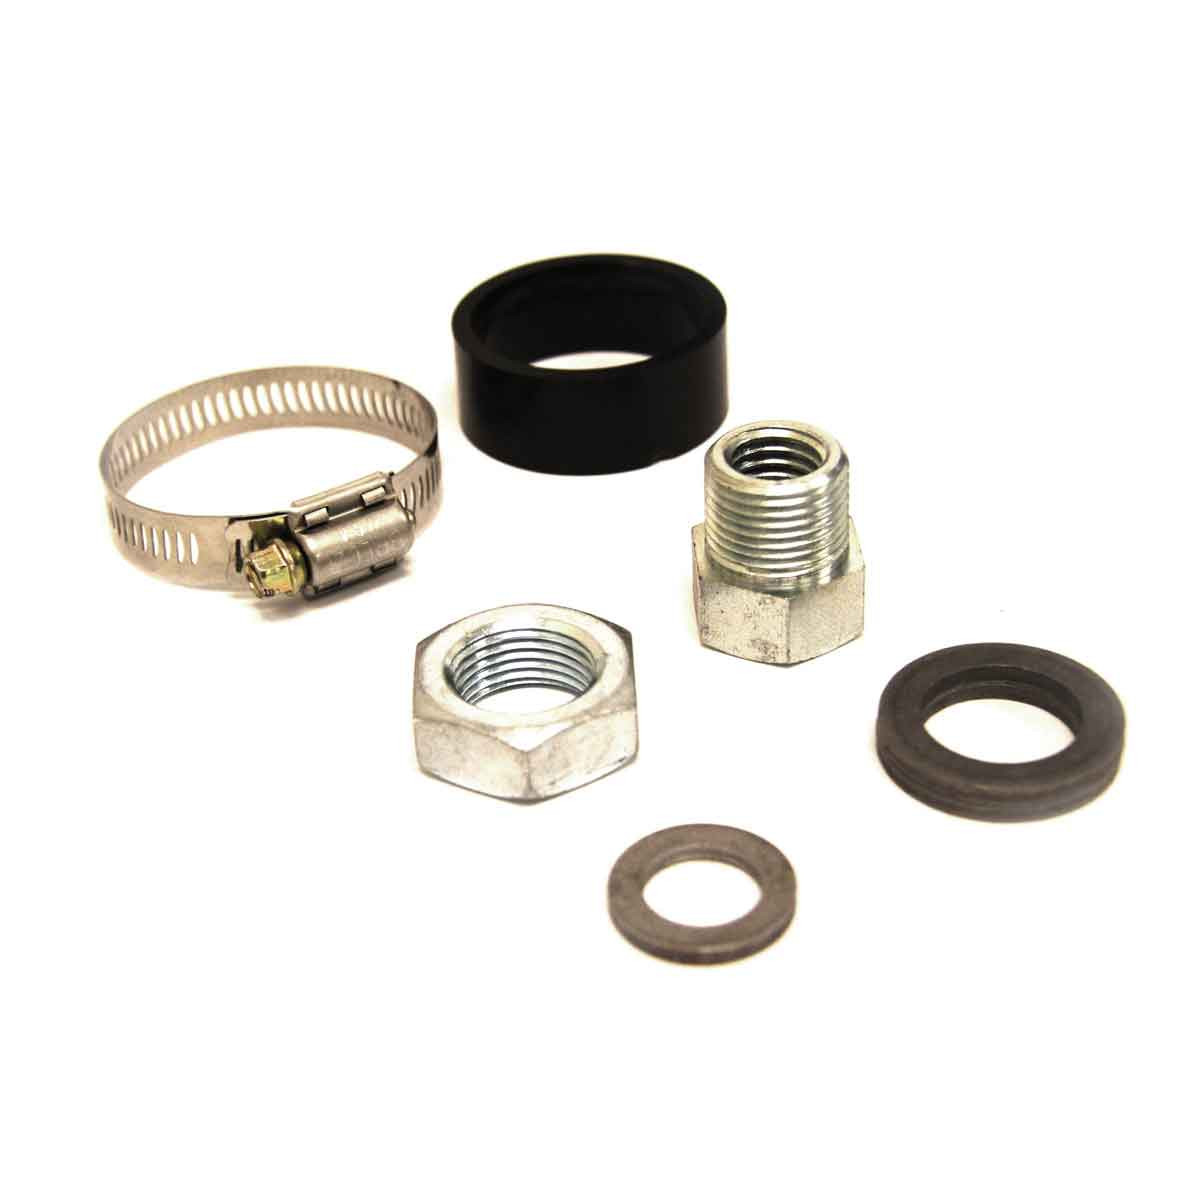 Pearl Abrasive Cup Nut Assembly